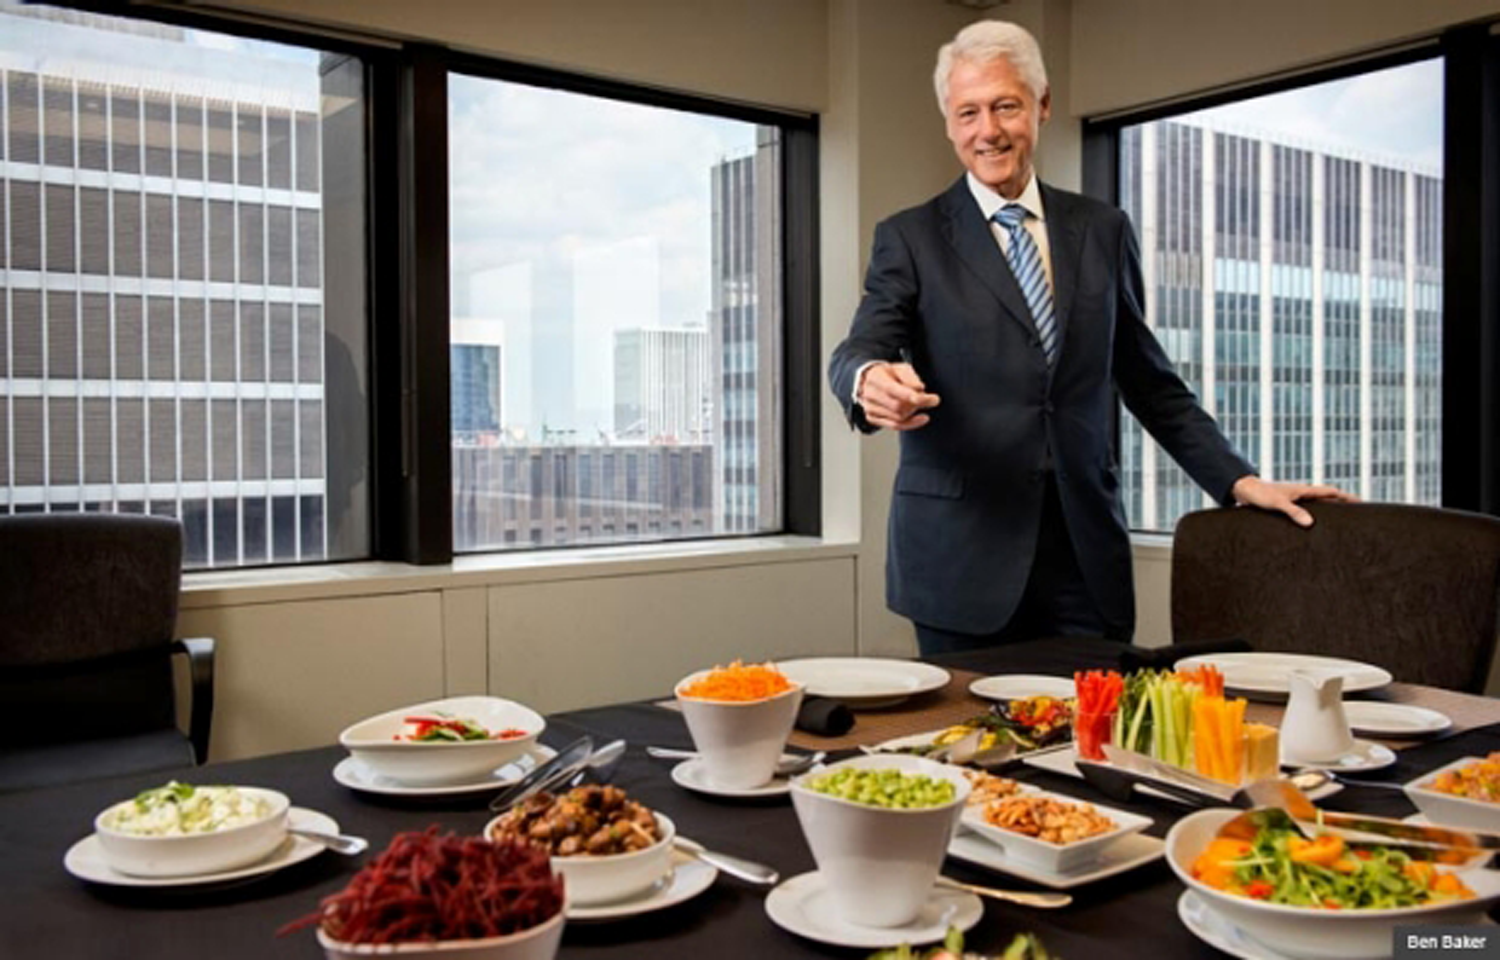 Former President Bill Clinton shows off his healthy lunch for  AARP The Magazine.  Photo source:  AARP's website.  Credit: Ben Baker.